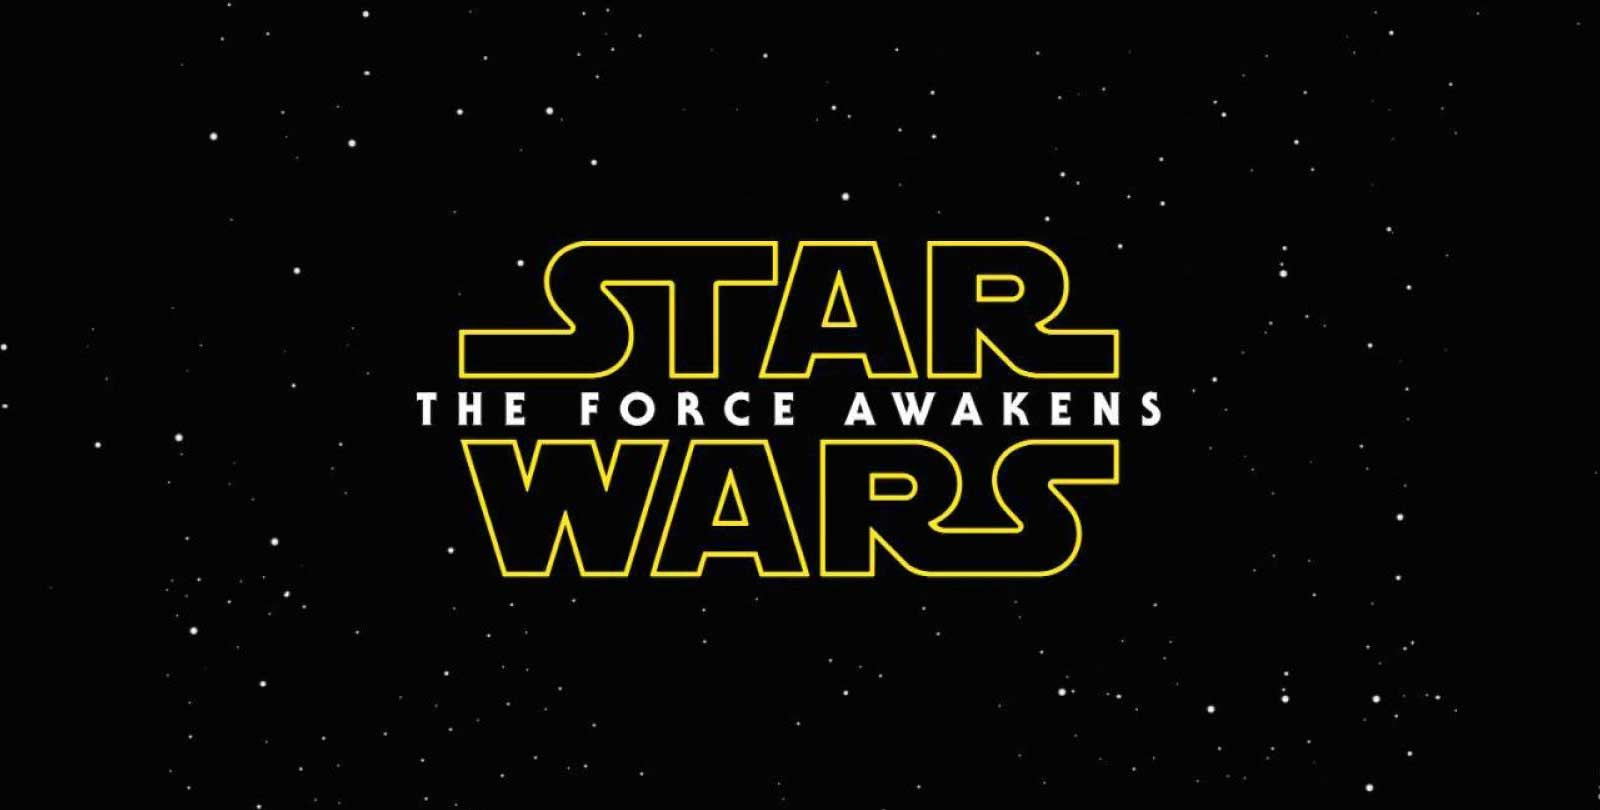 Star Wars: Episode VII – The Force Awakens [Official Teaser Trailer]